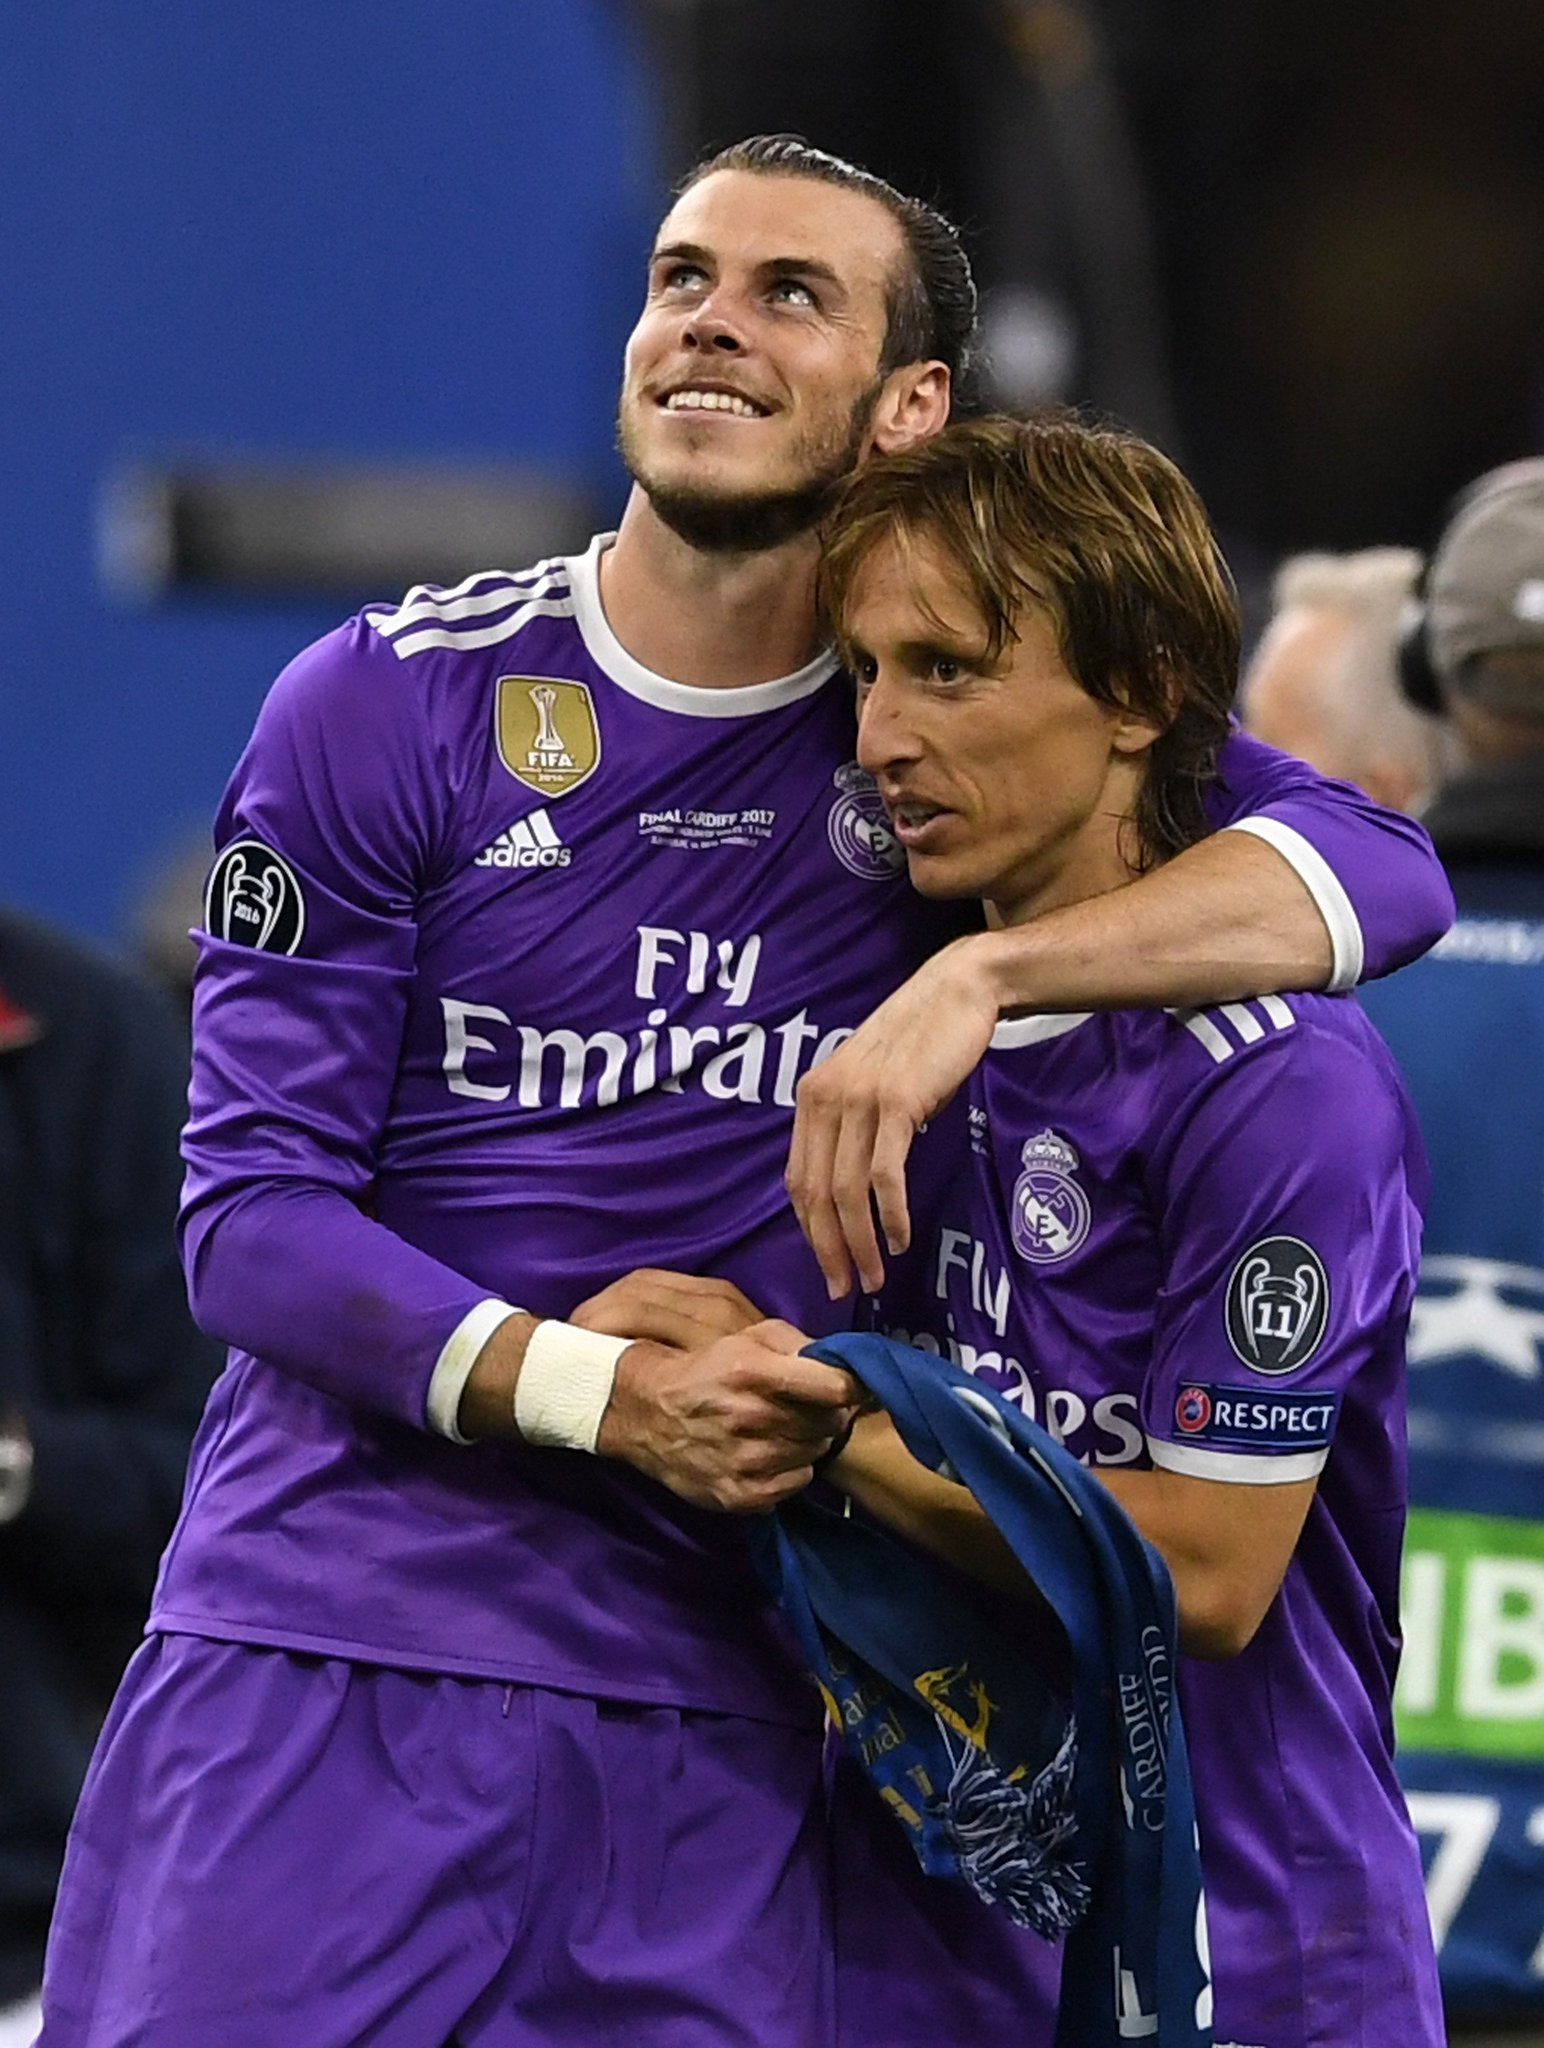 Congratulations my friend! An unbelievable player and an unbelievable season @lukamodric10 ������������ https://t.co/0lceC1wEaj